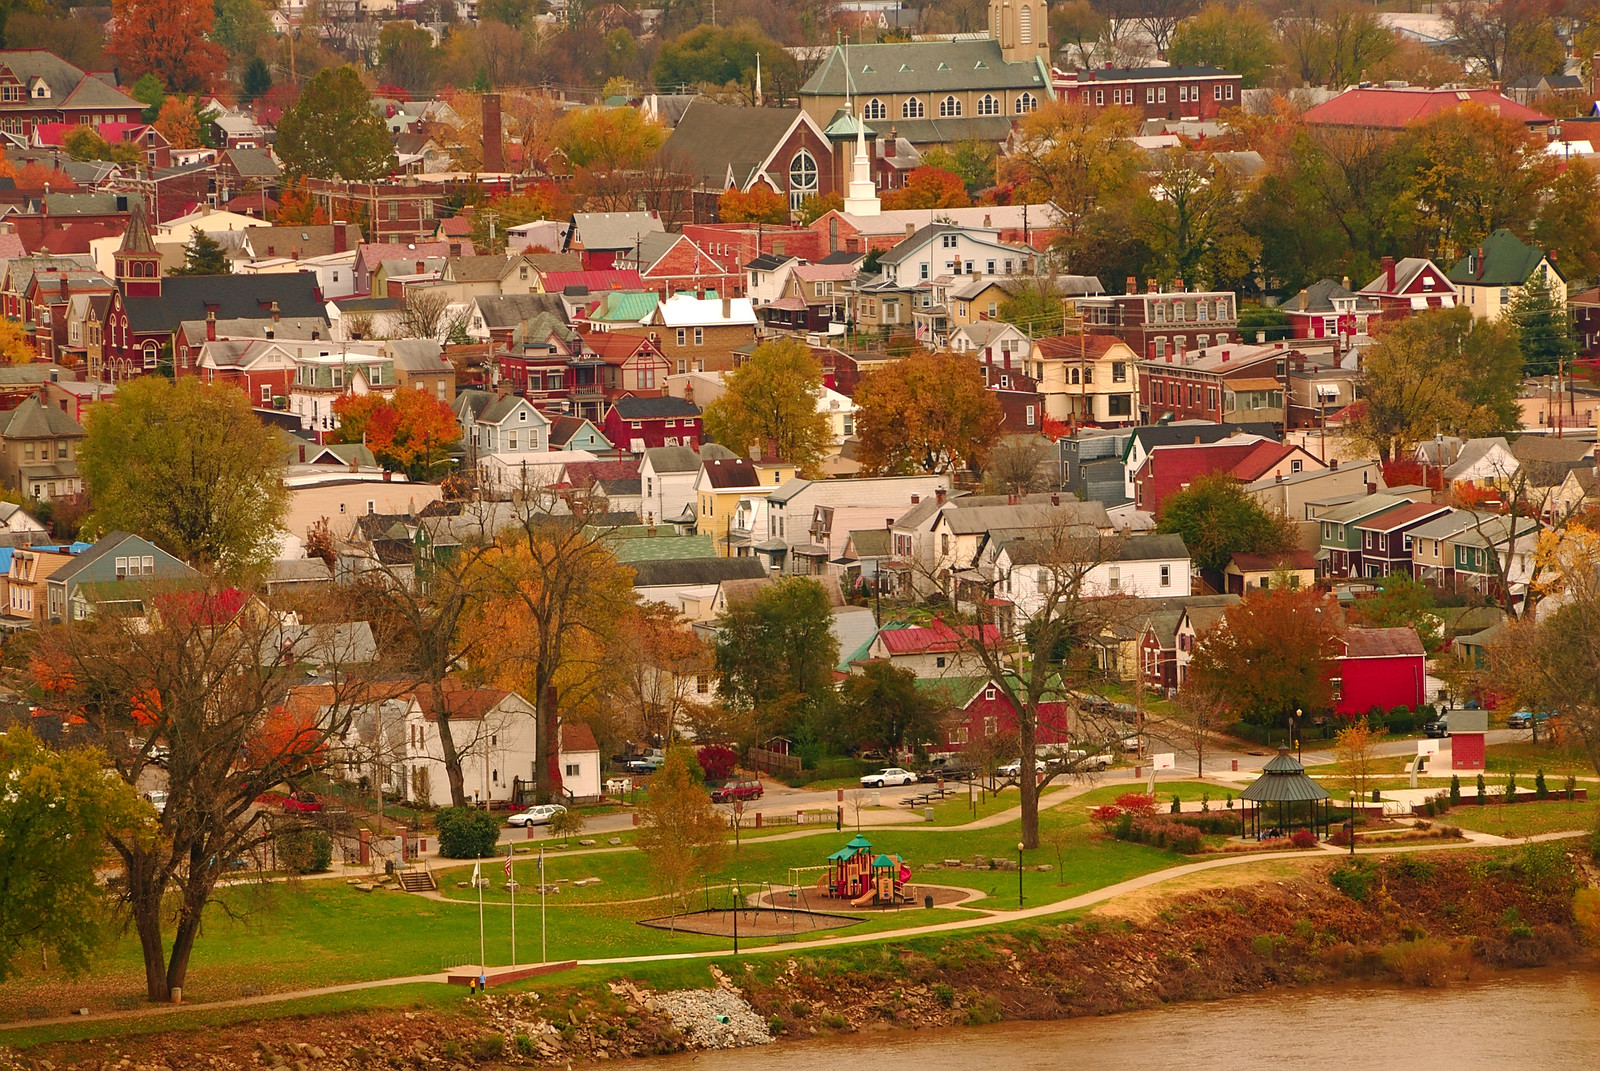 small town in Kentucky along the river in autumn on a clear day